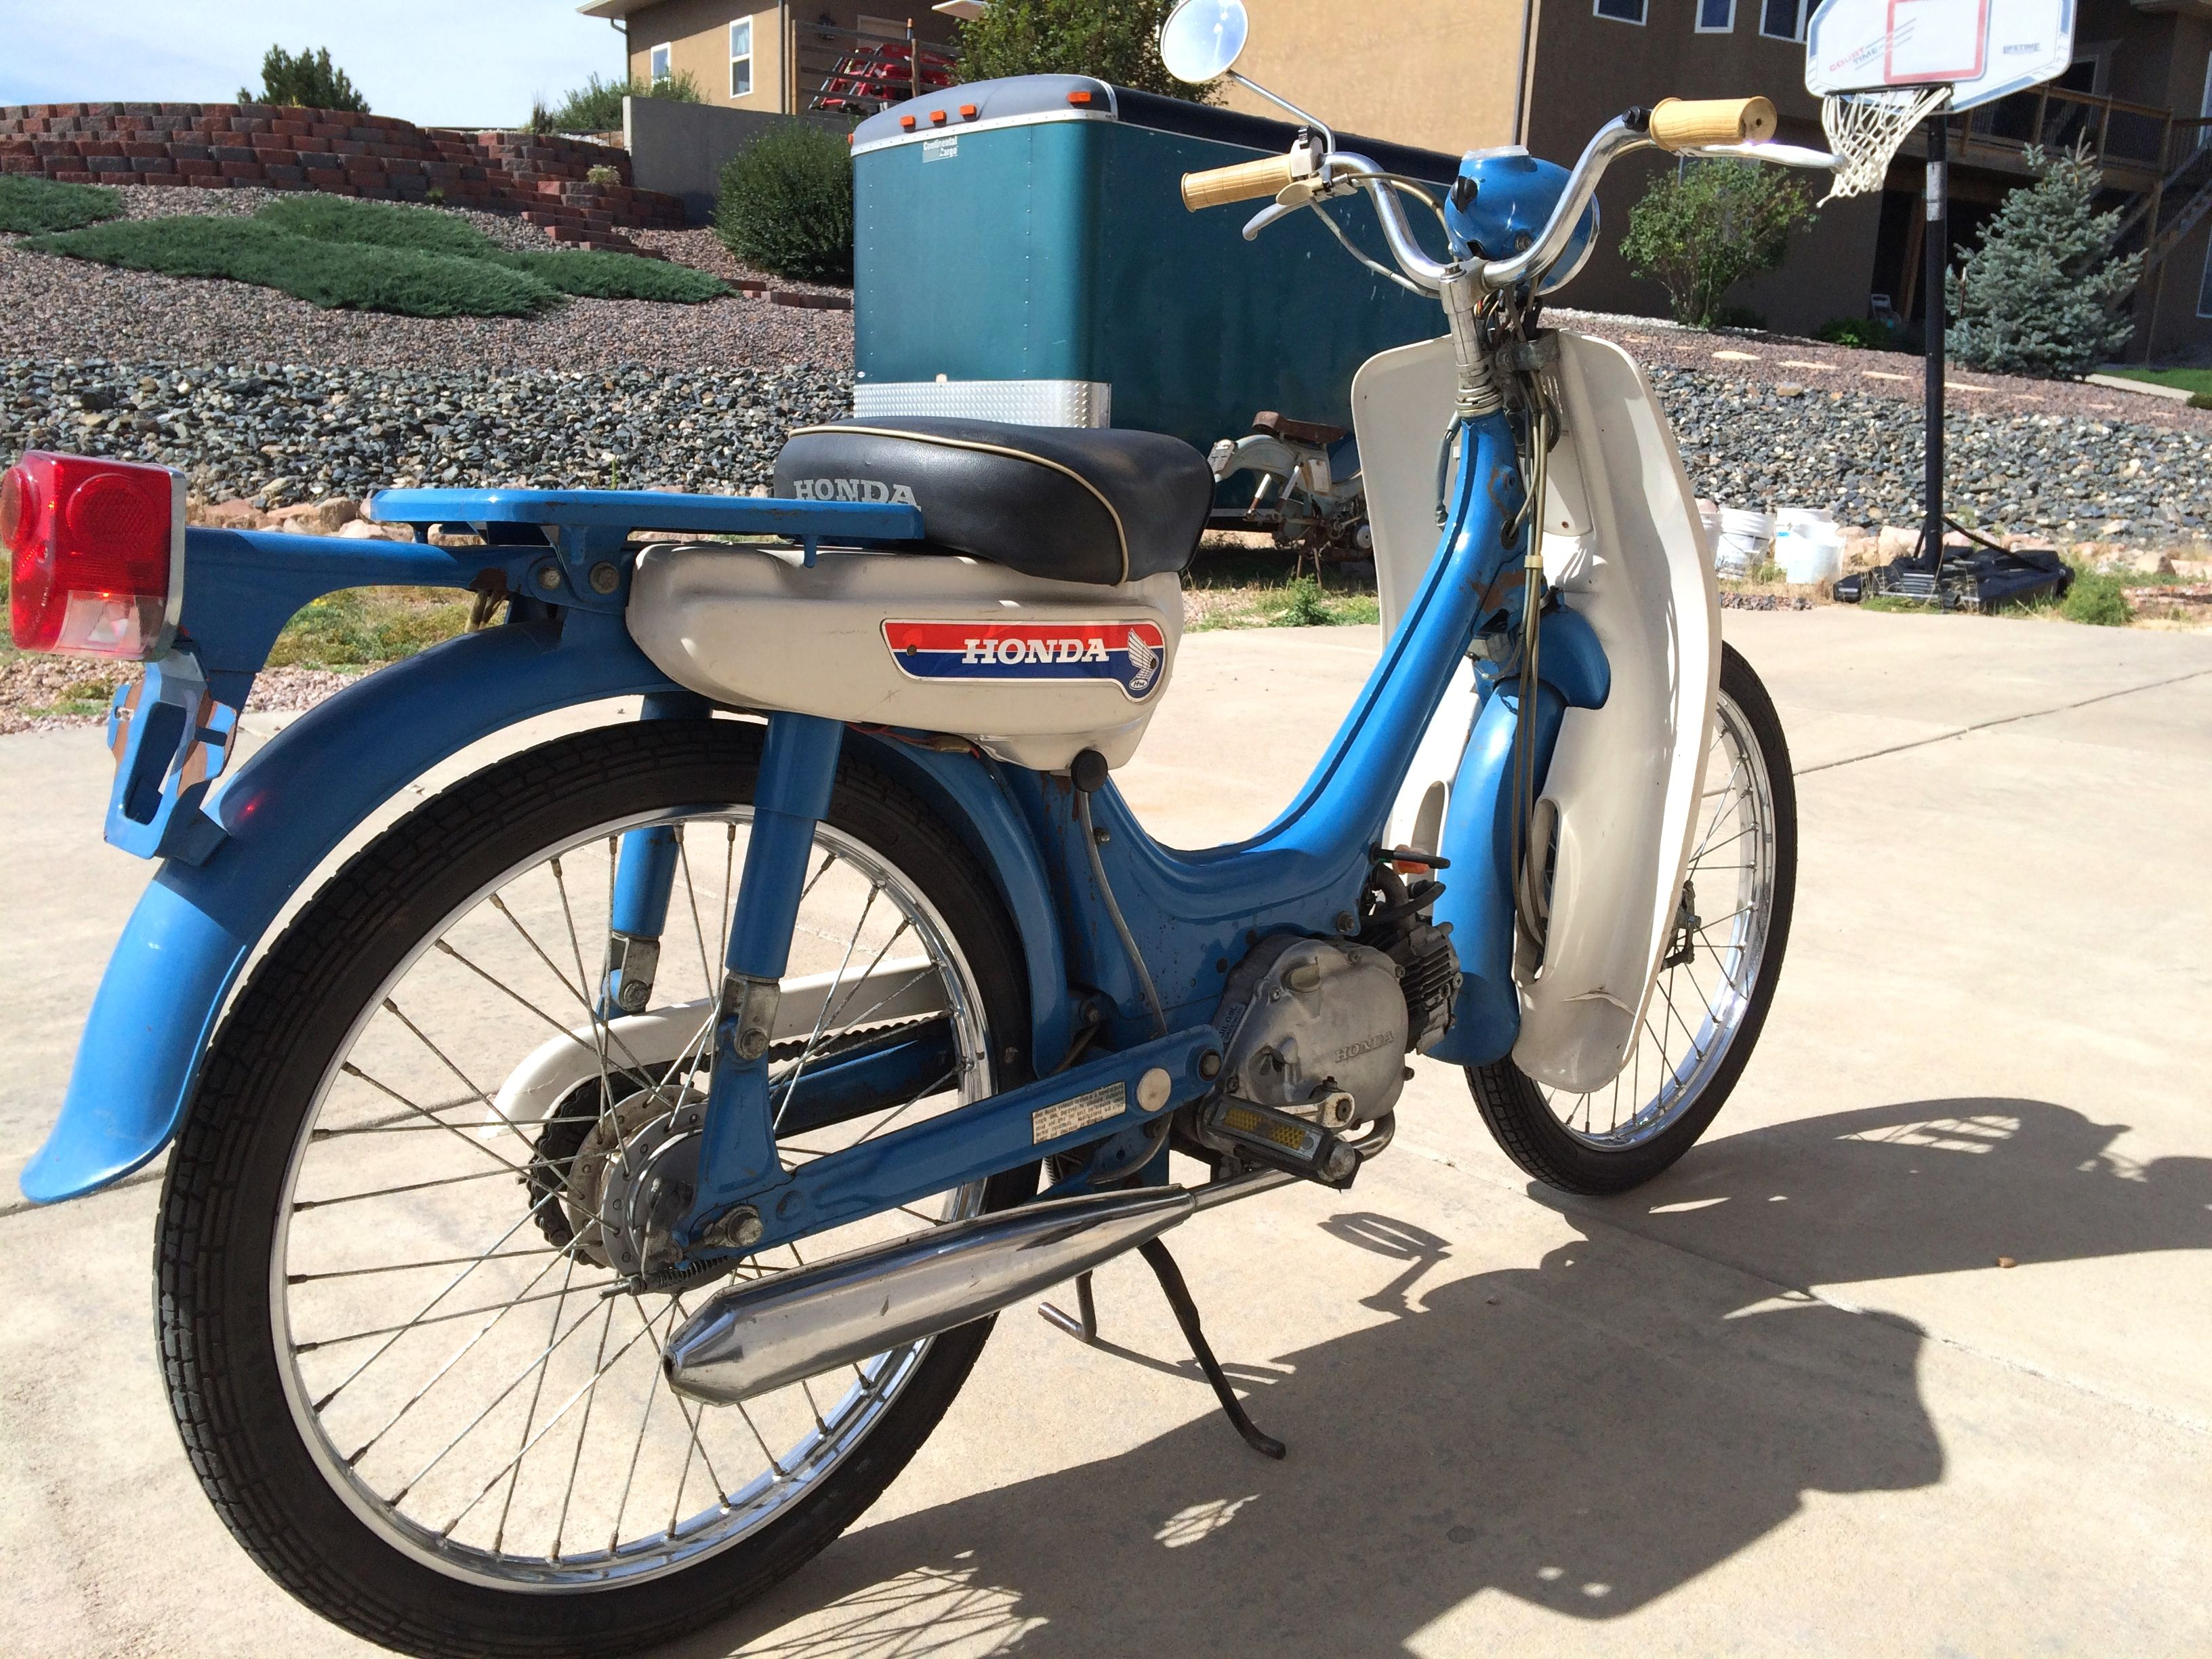 1969 Honda PC50 Moped w/Variable ratio transmission